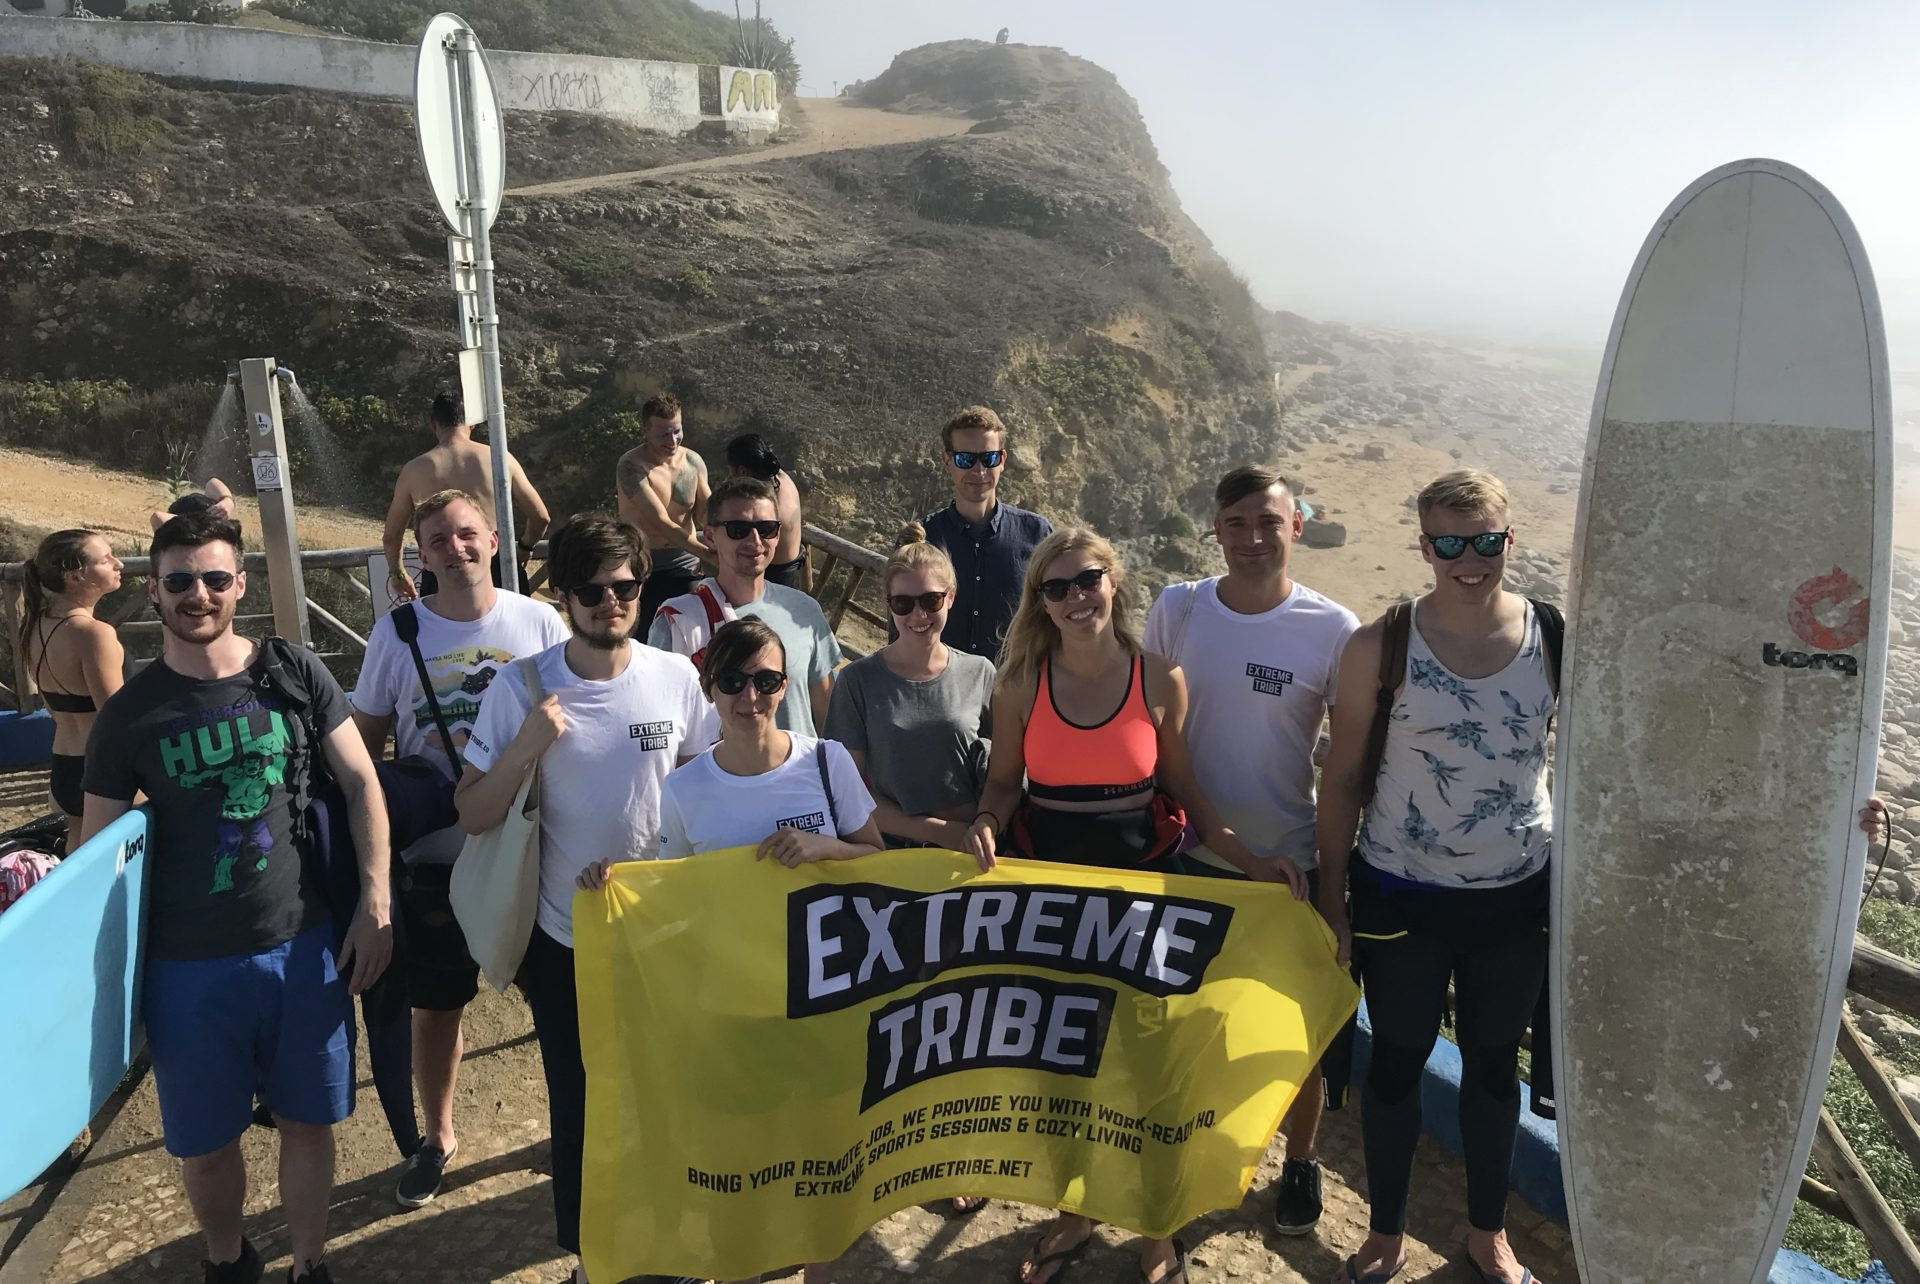 Extreme Tribe surfing and working remotely in Ericeira, Portugal in September 2019: